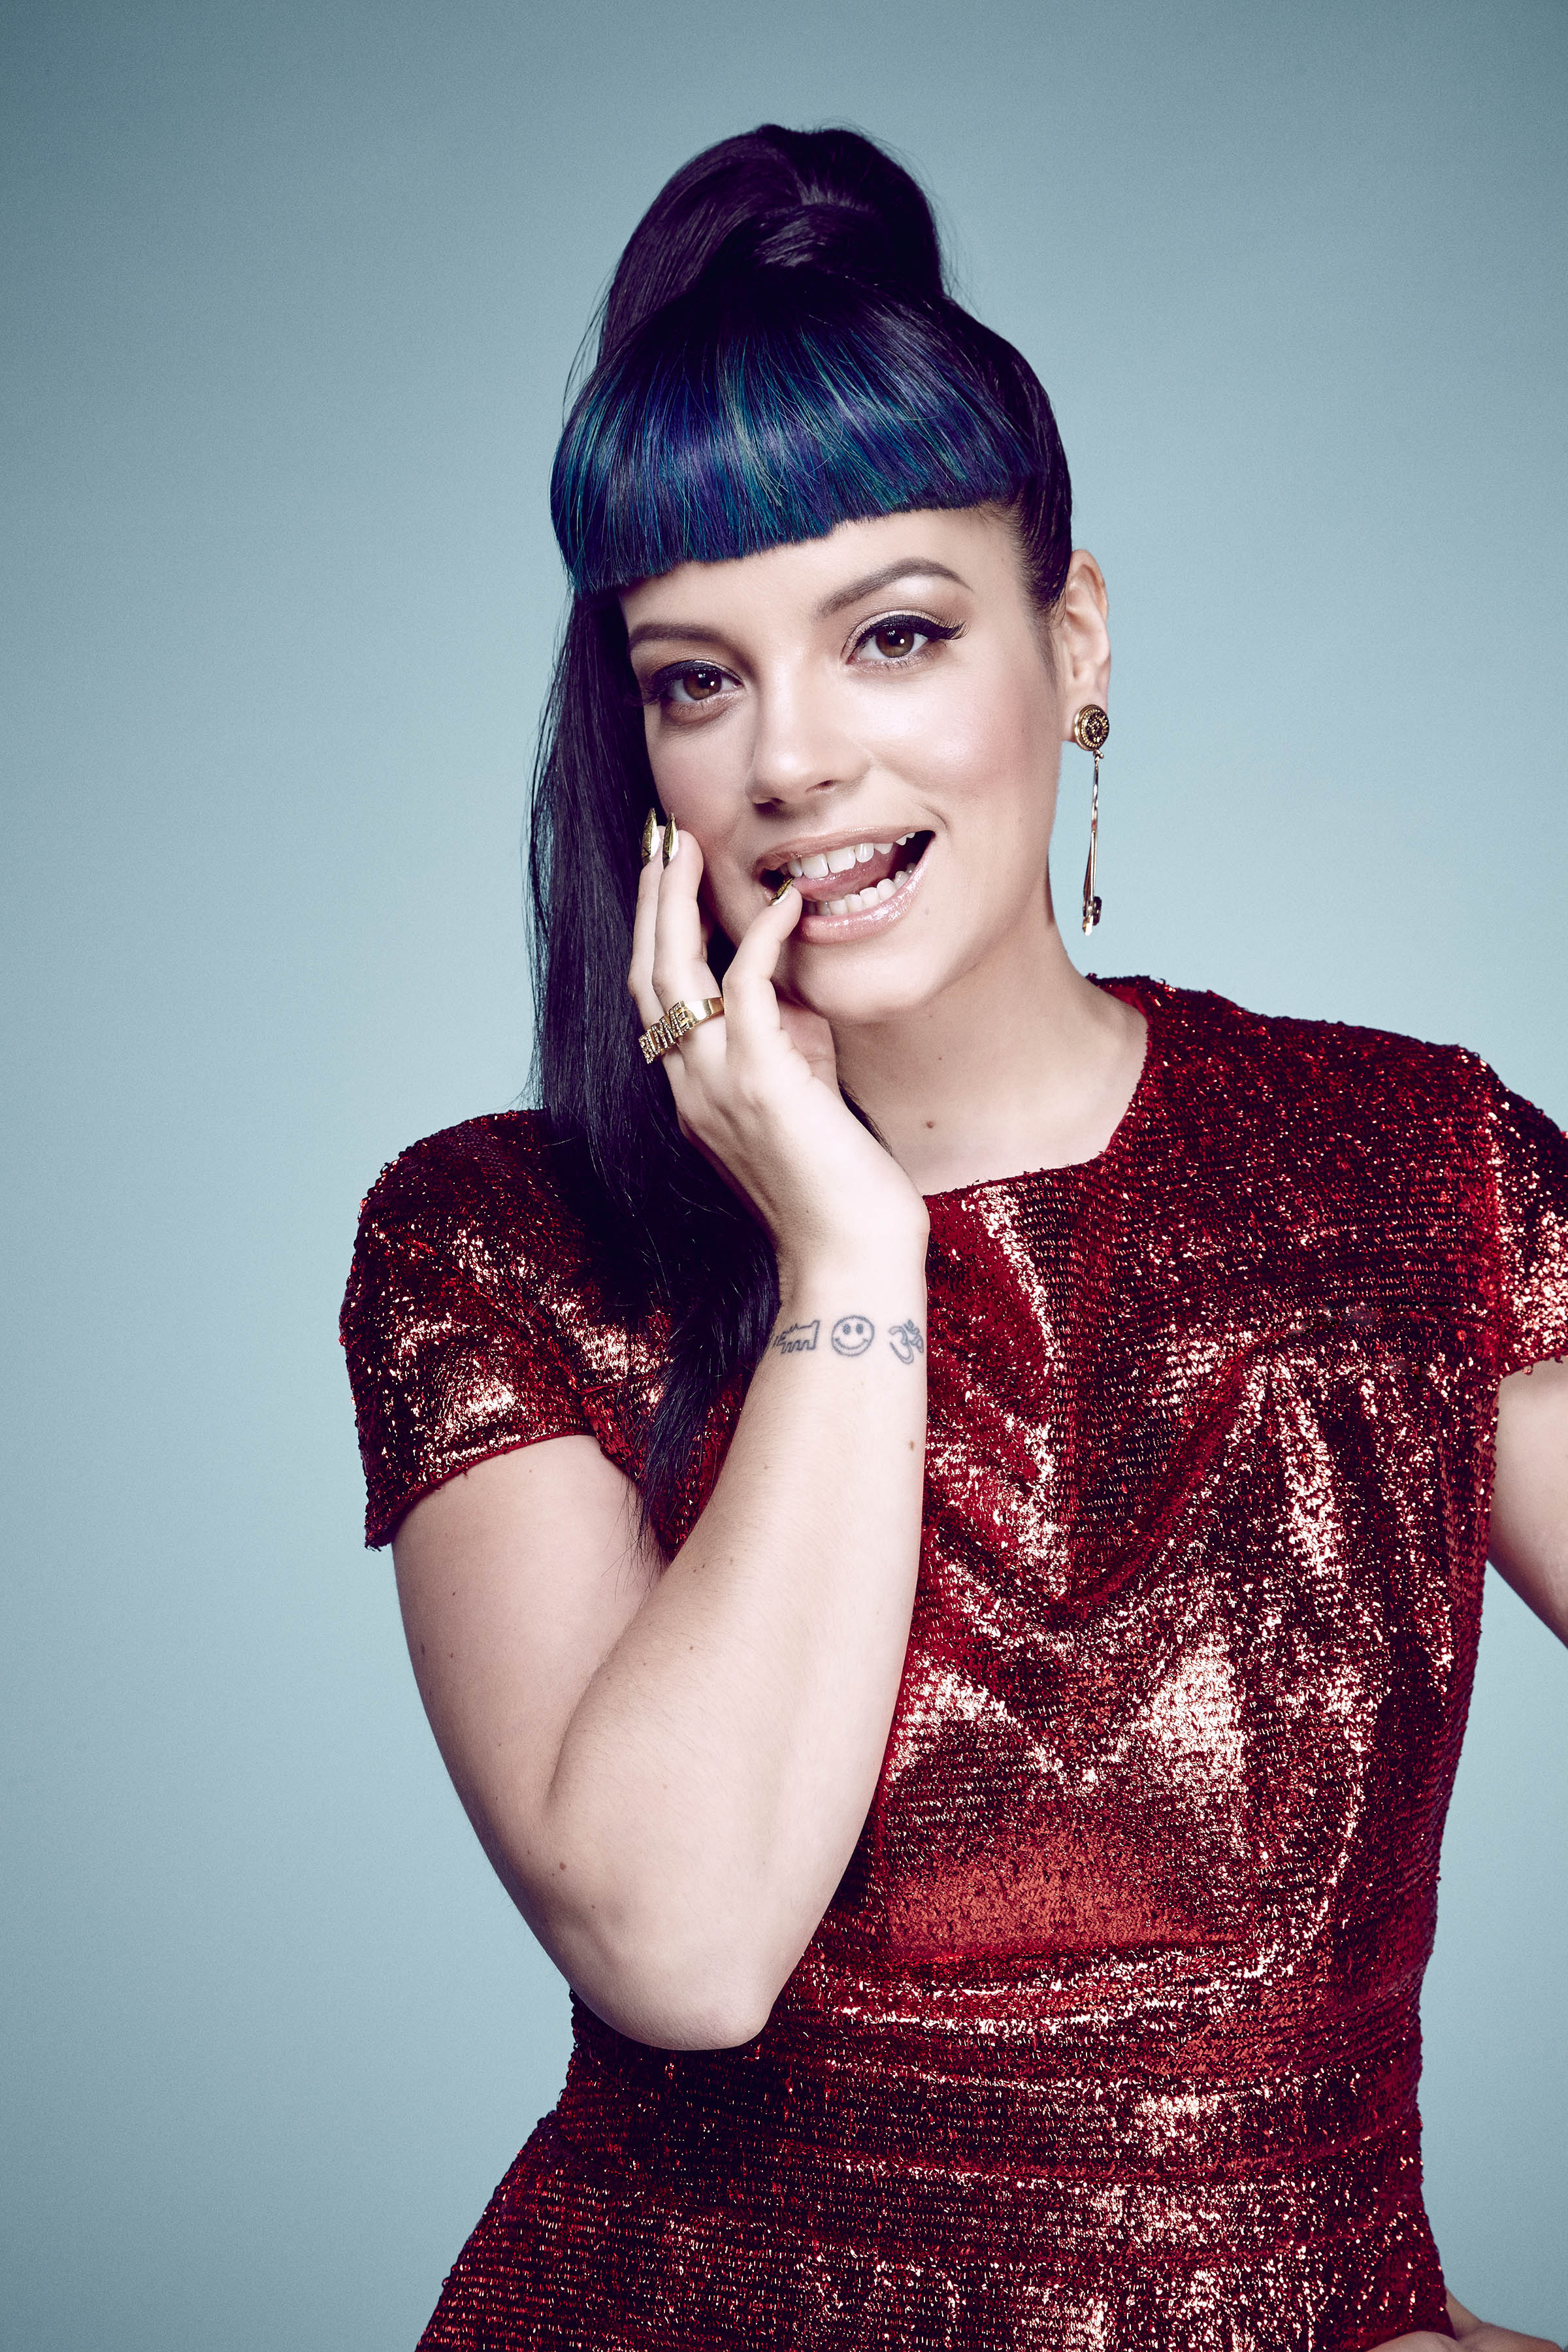 HQ Lily Allen Wallpapers | File 1500.59Kb